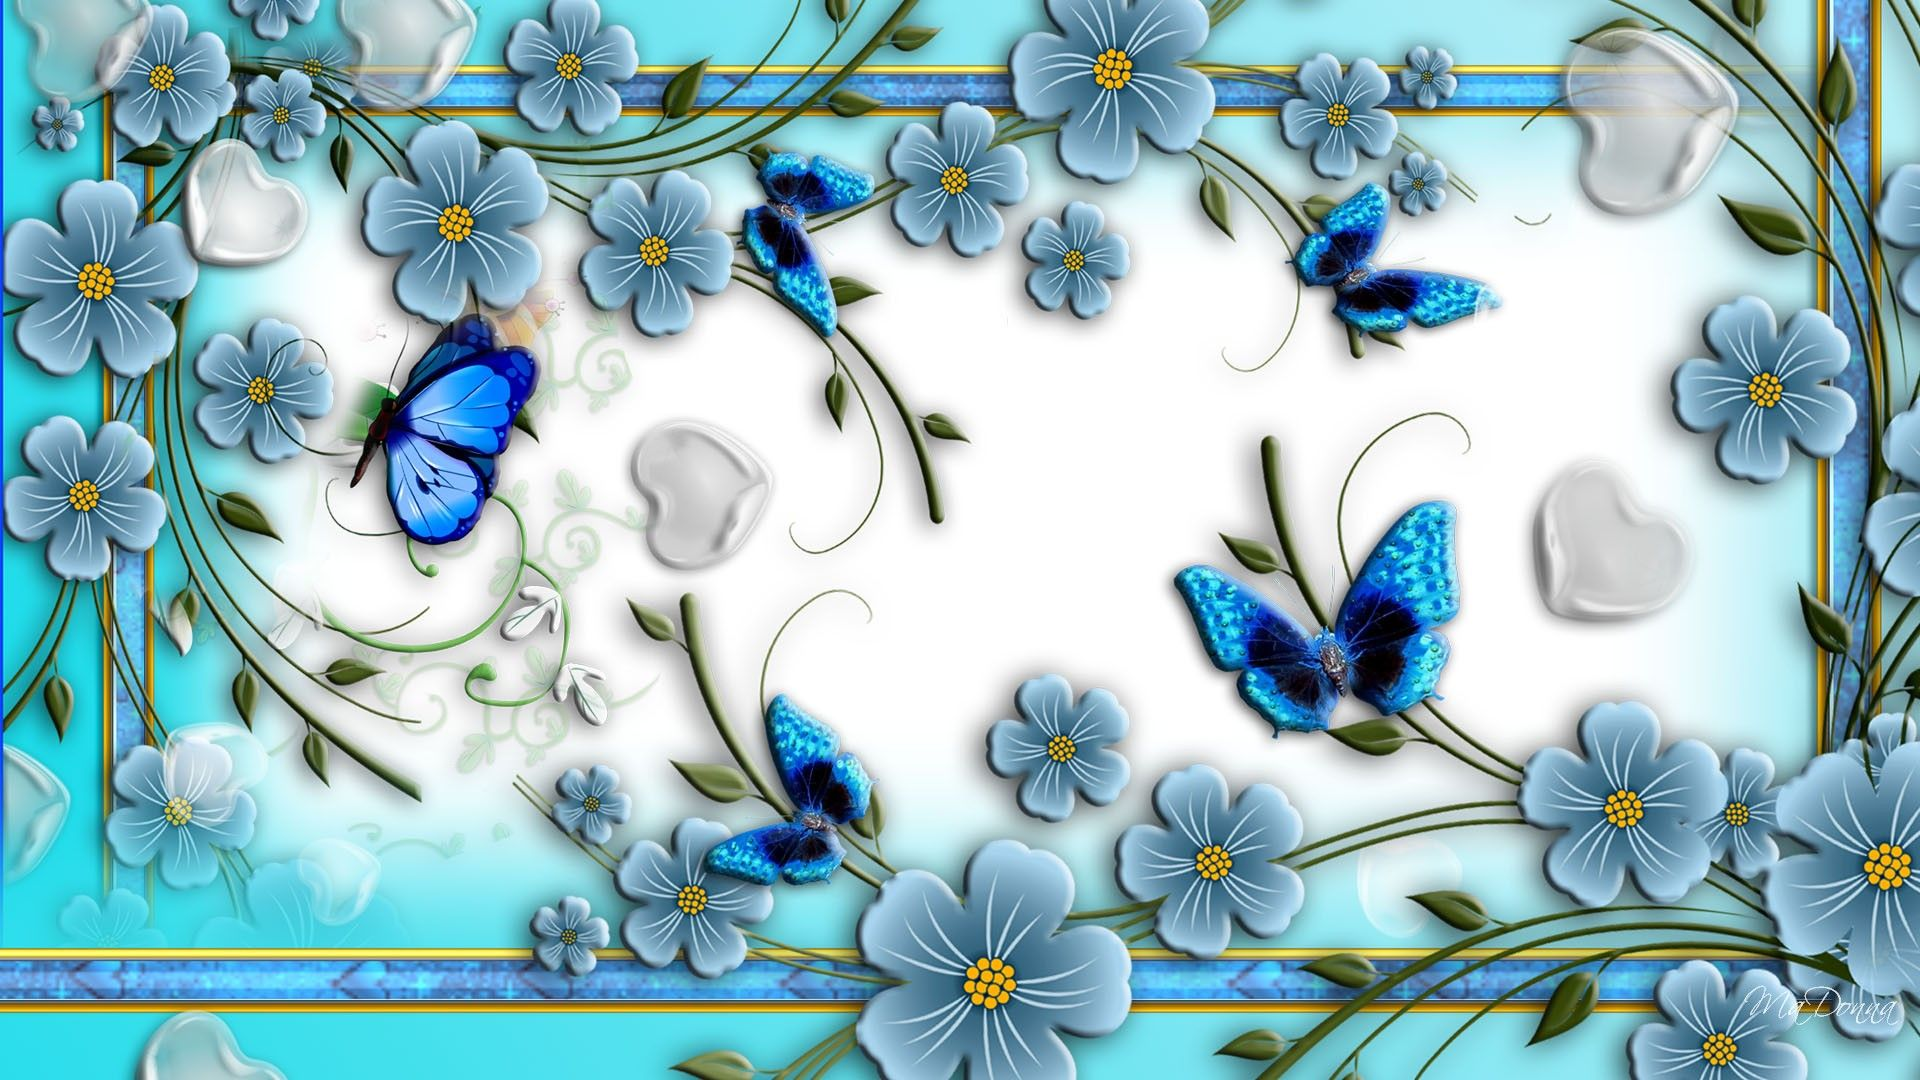 wallpaper flowers and butterflies | flower wallpapers butterflies